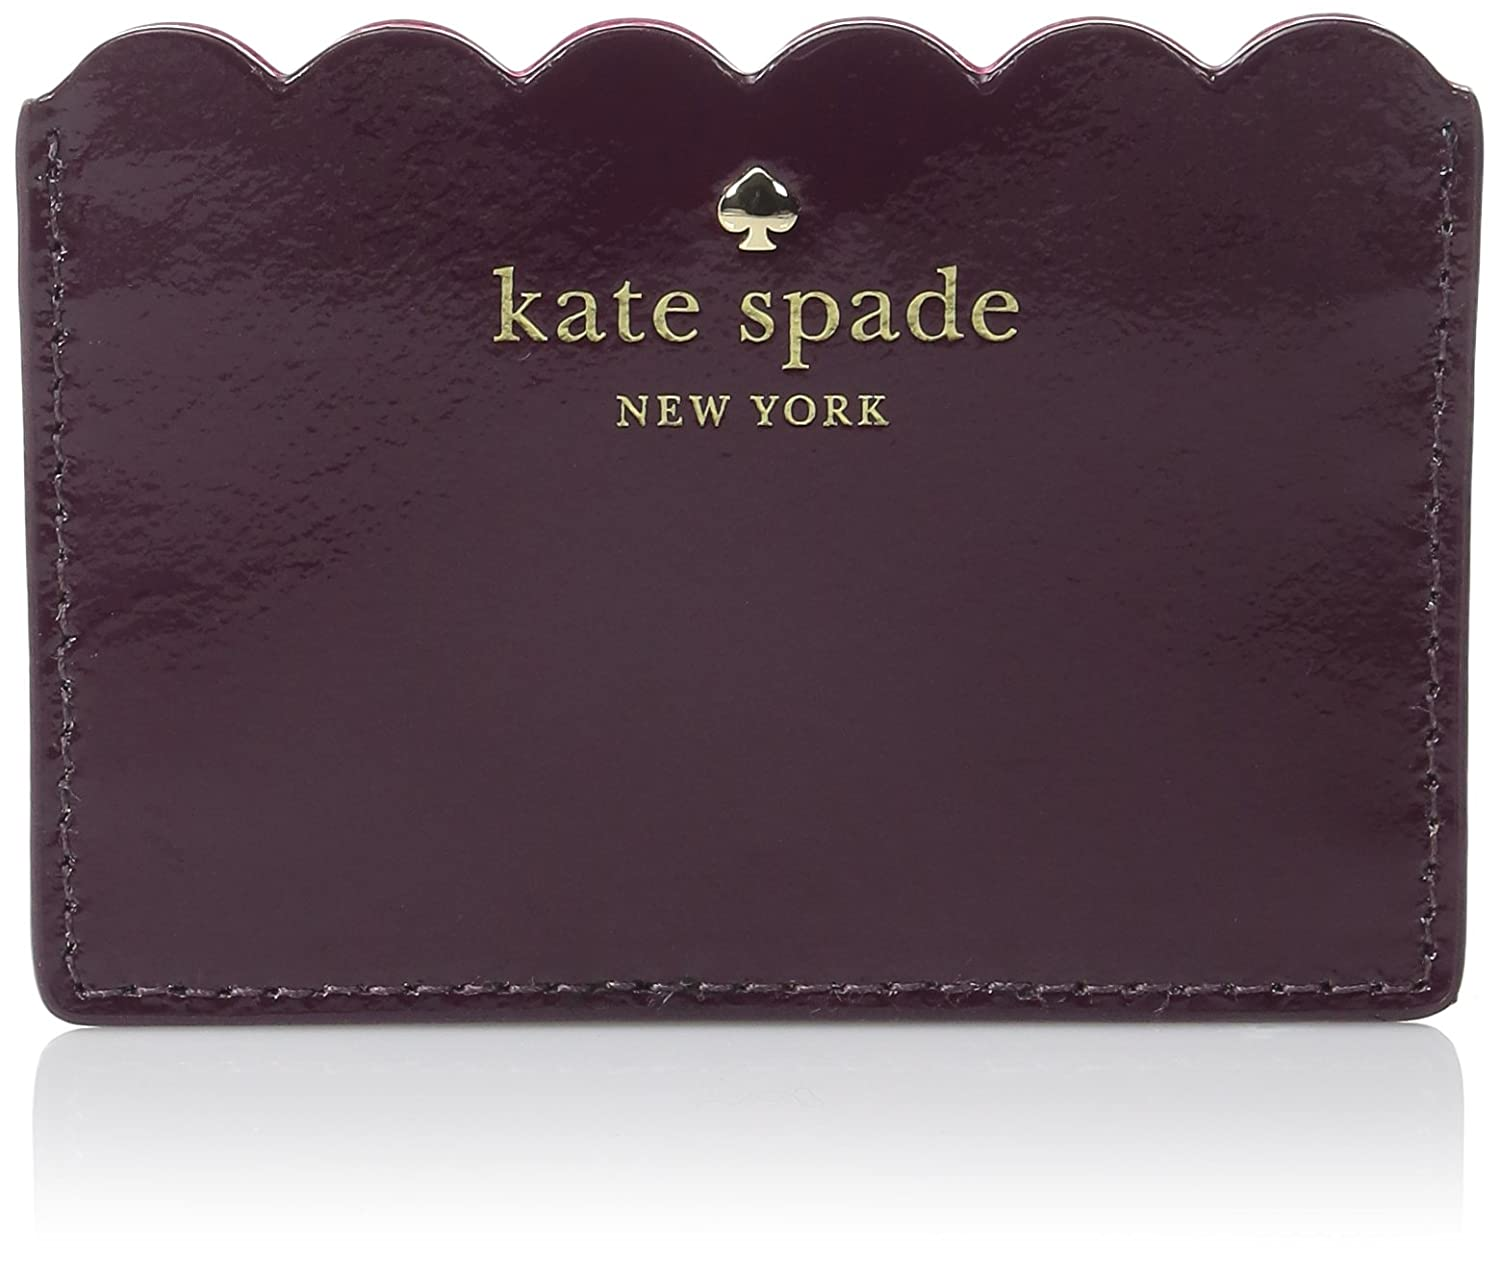 kate spade new york Lily Avenue Patent Credit Card Holder Mahogany/Radish PWRU5164